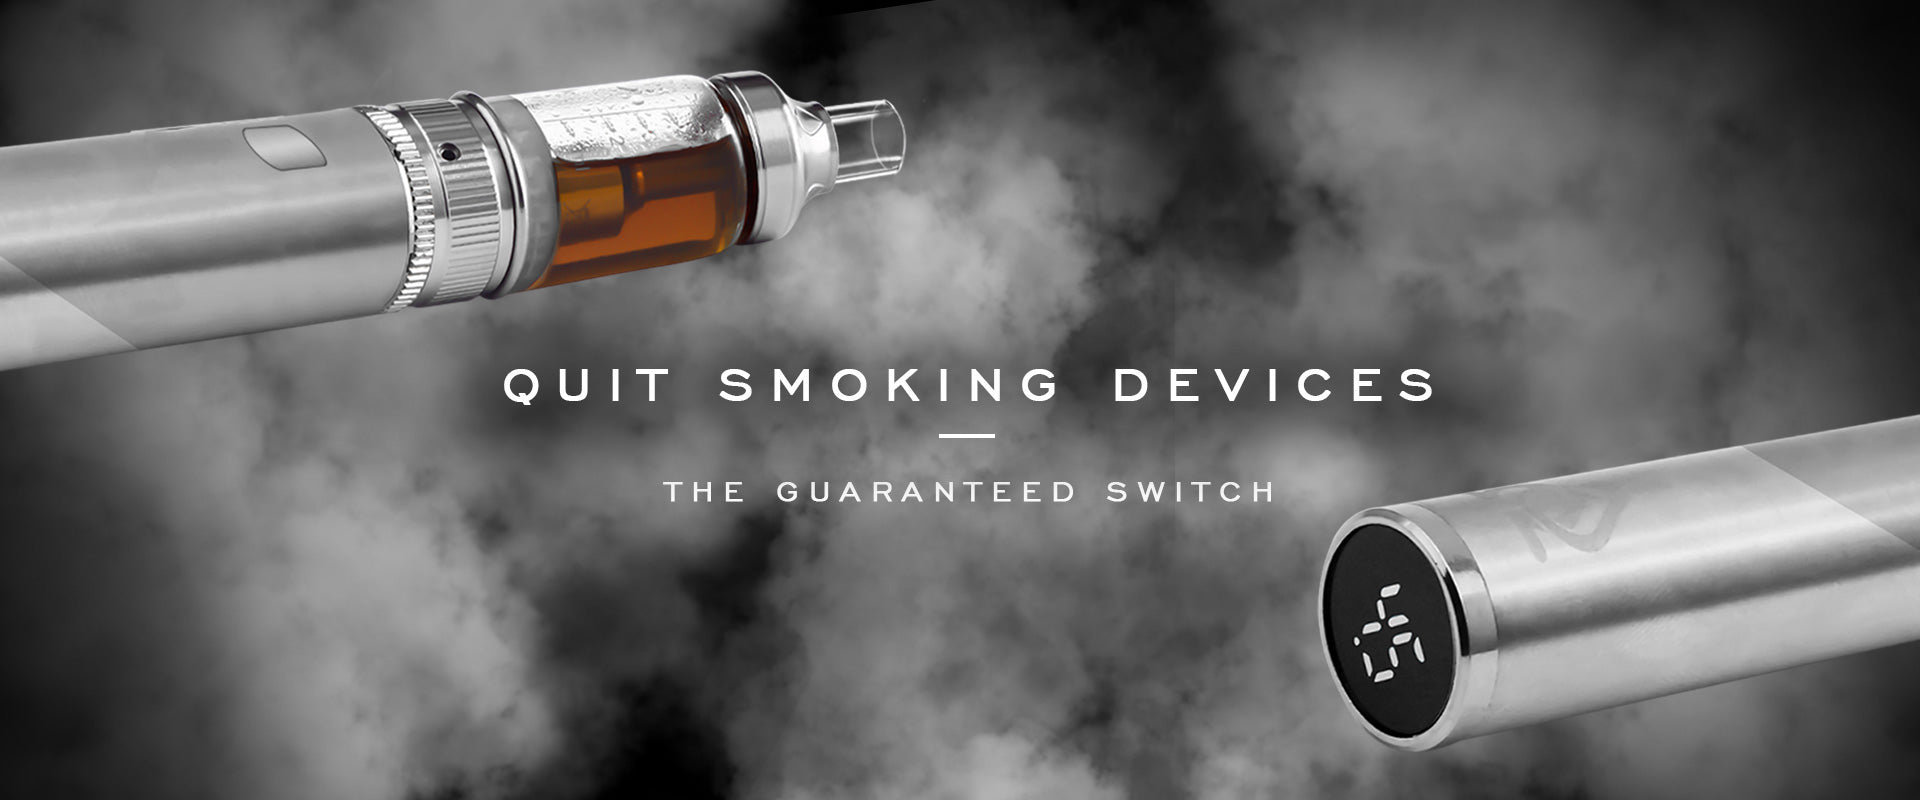 quit smoking device